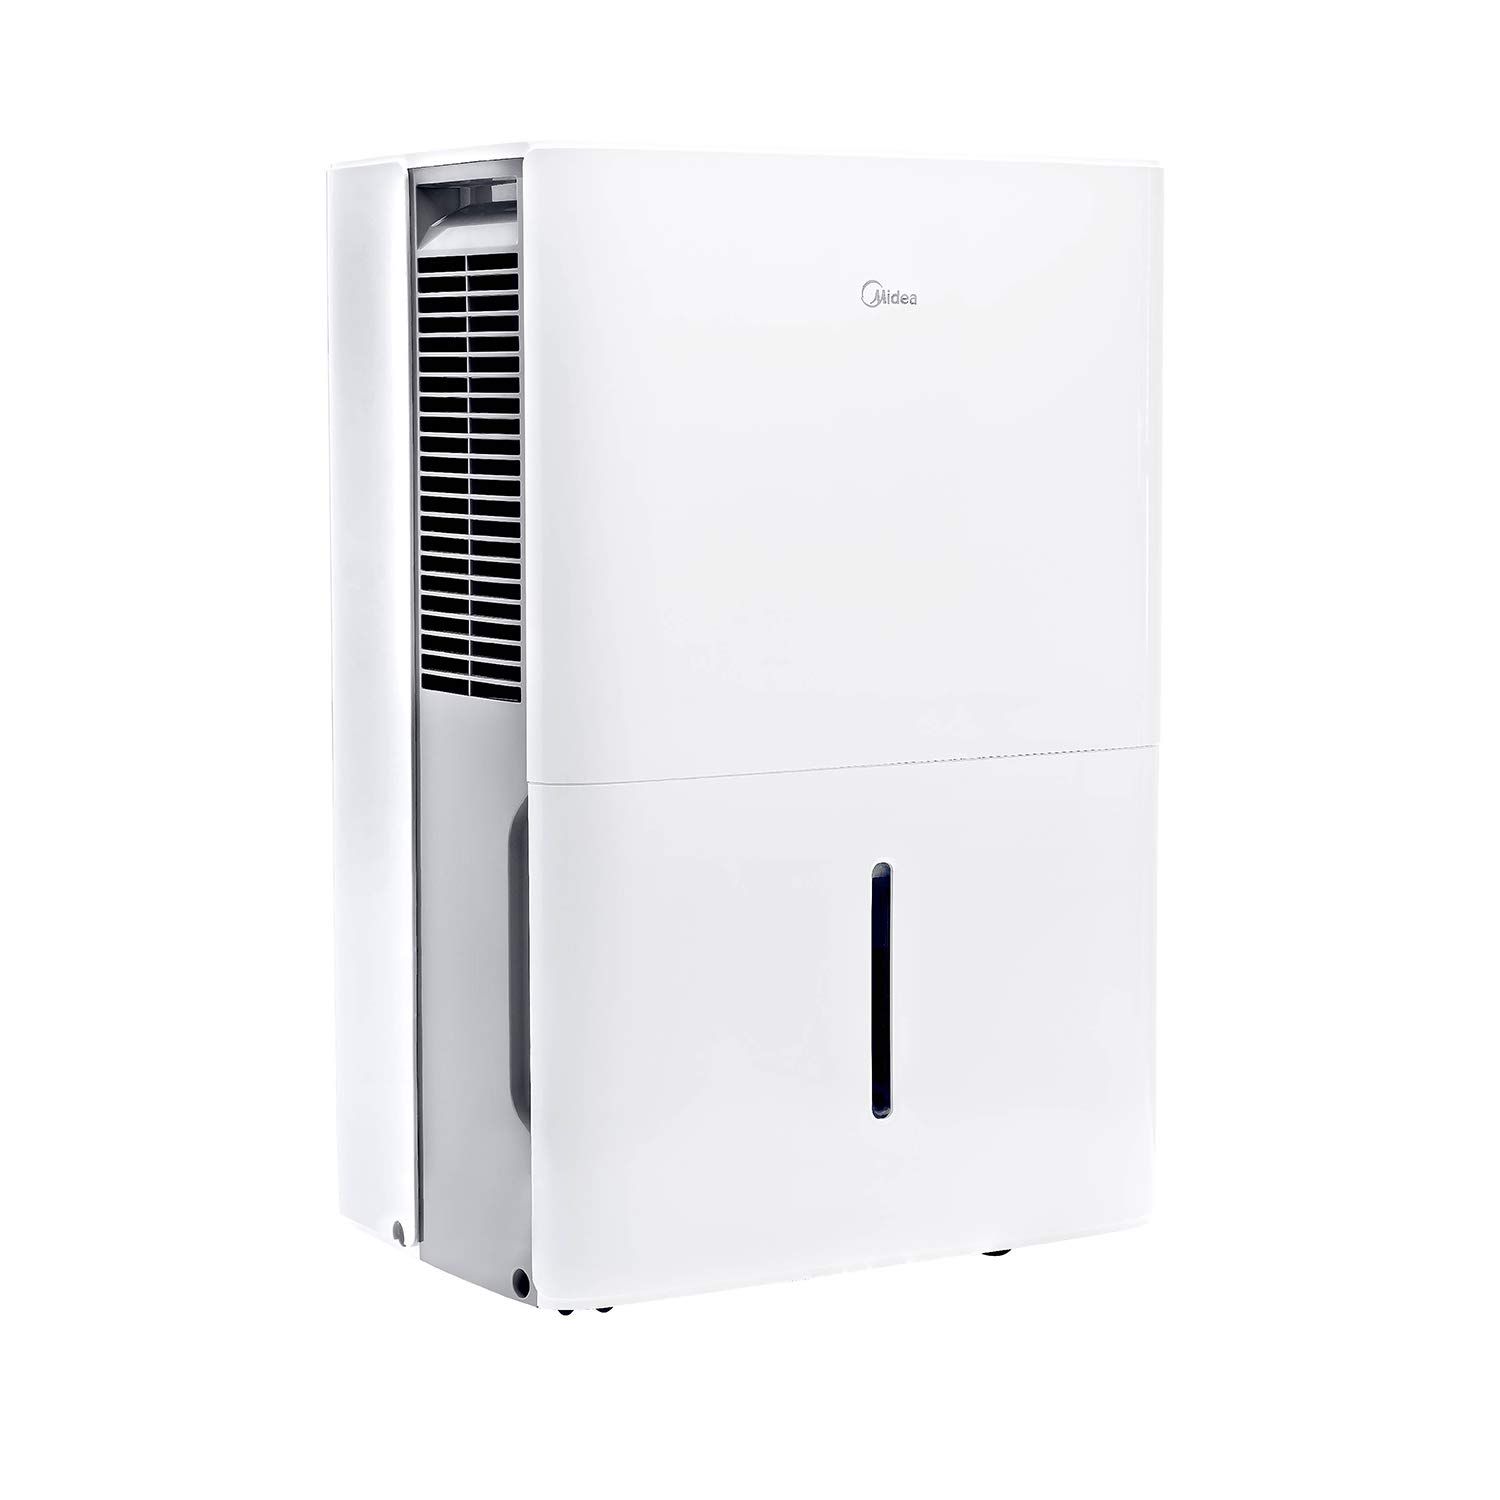 Midea MAD30C1YWS Dehumidifier 30 Pint with Reusable Filter, Ideal for basements, bedroom, bathroom, with bucket of 0.8 gallon